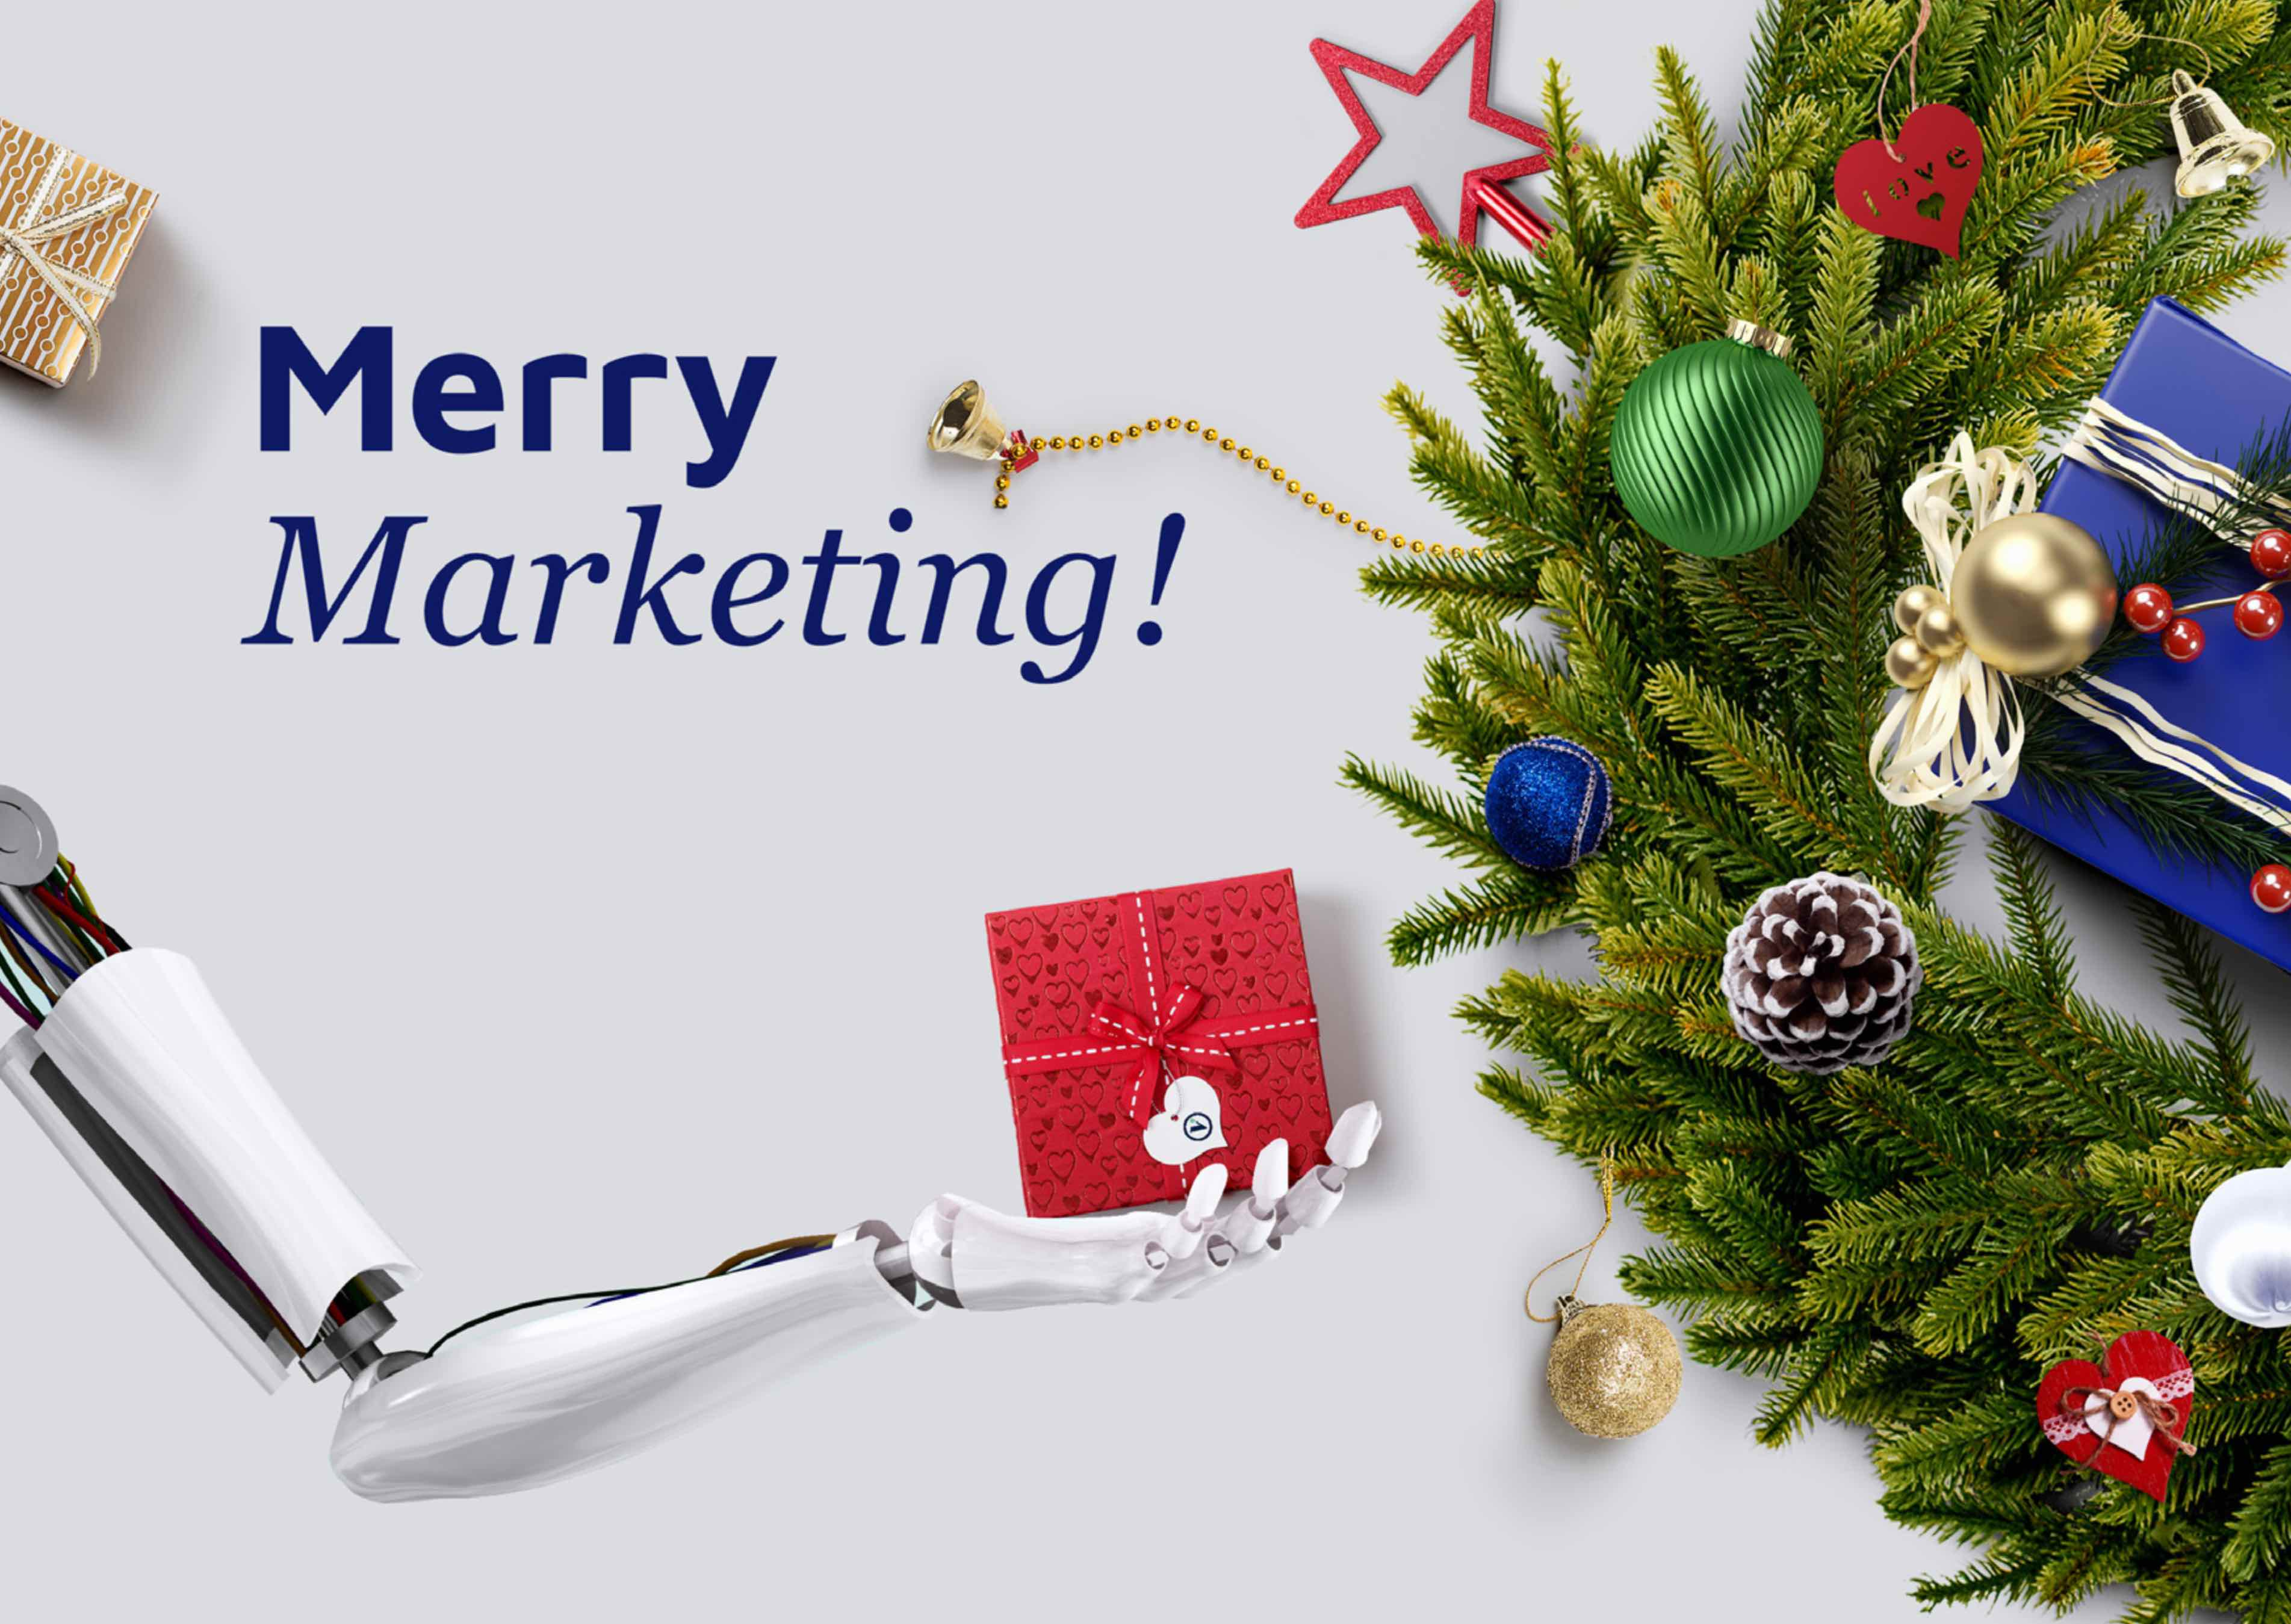 Merry Marketing - Holiday Greetings from Vermilion Pinstripes Modern Marketing team